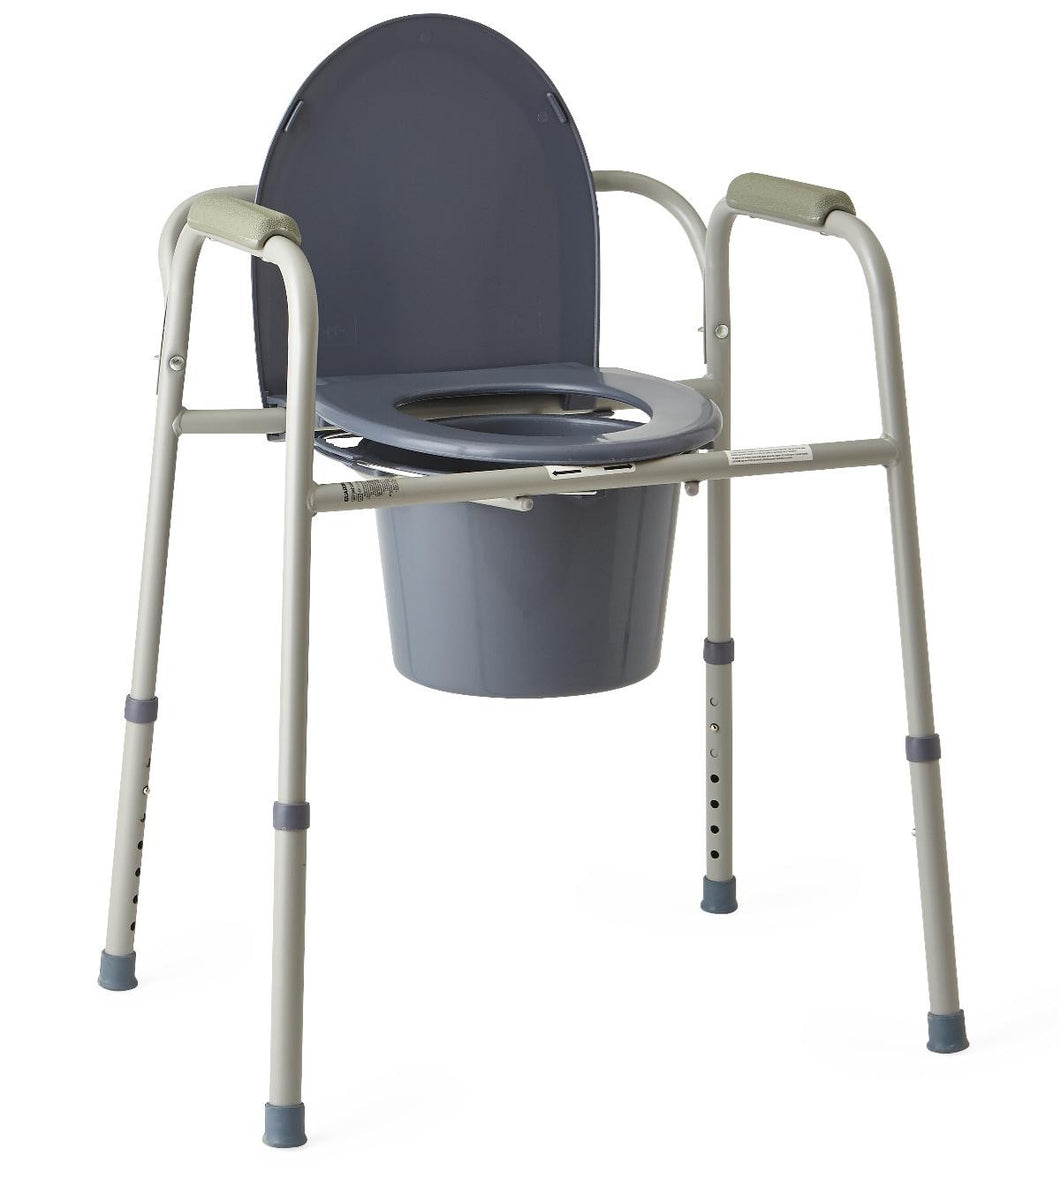 Medline Steel Deluexe 3-in-1 Bedside Commode - Scrubsnmed